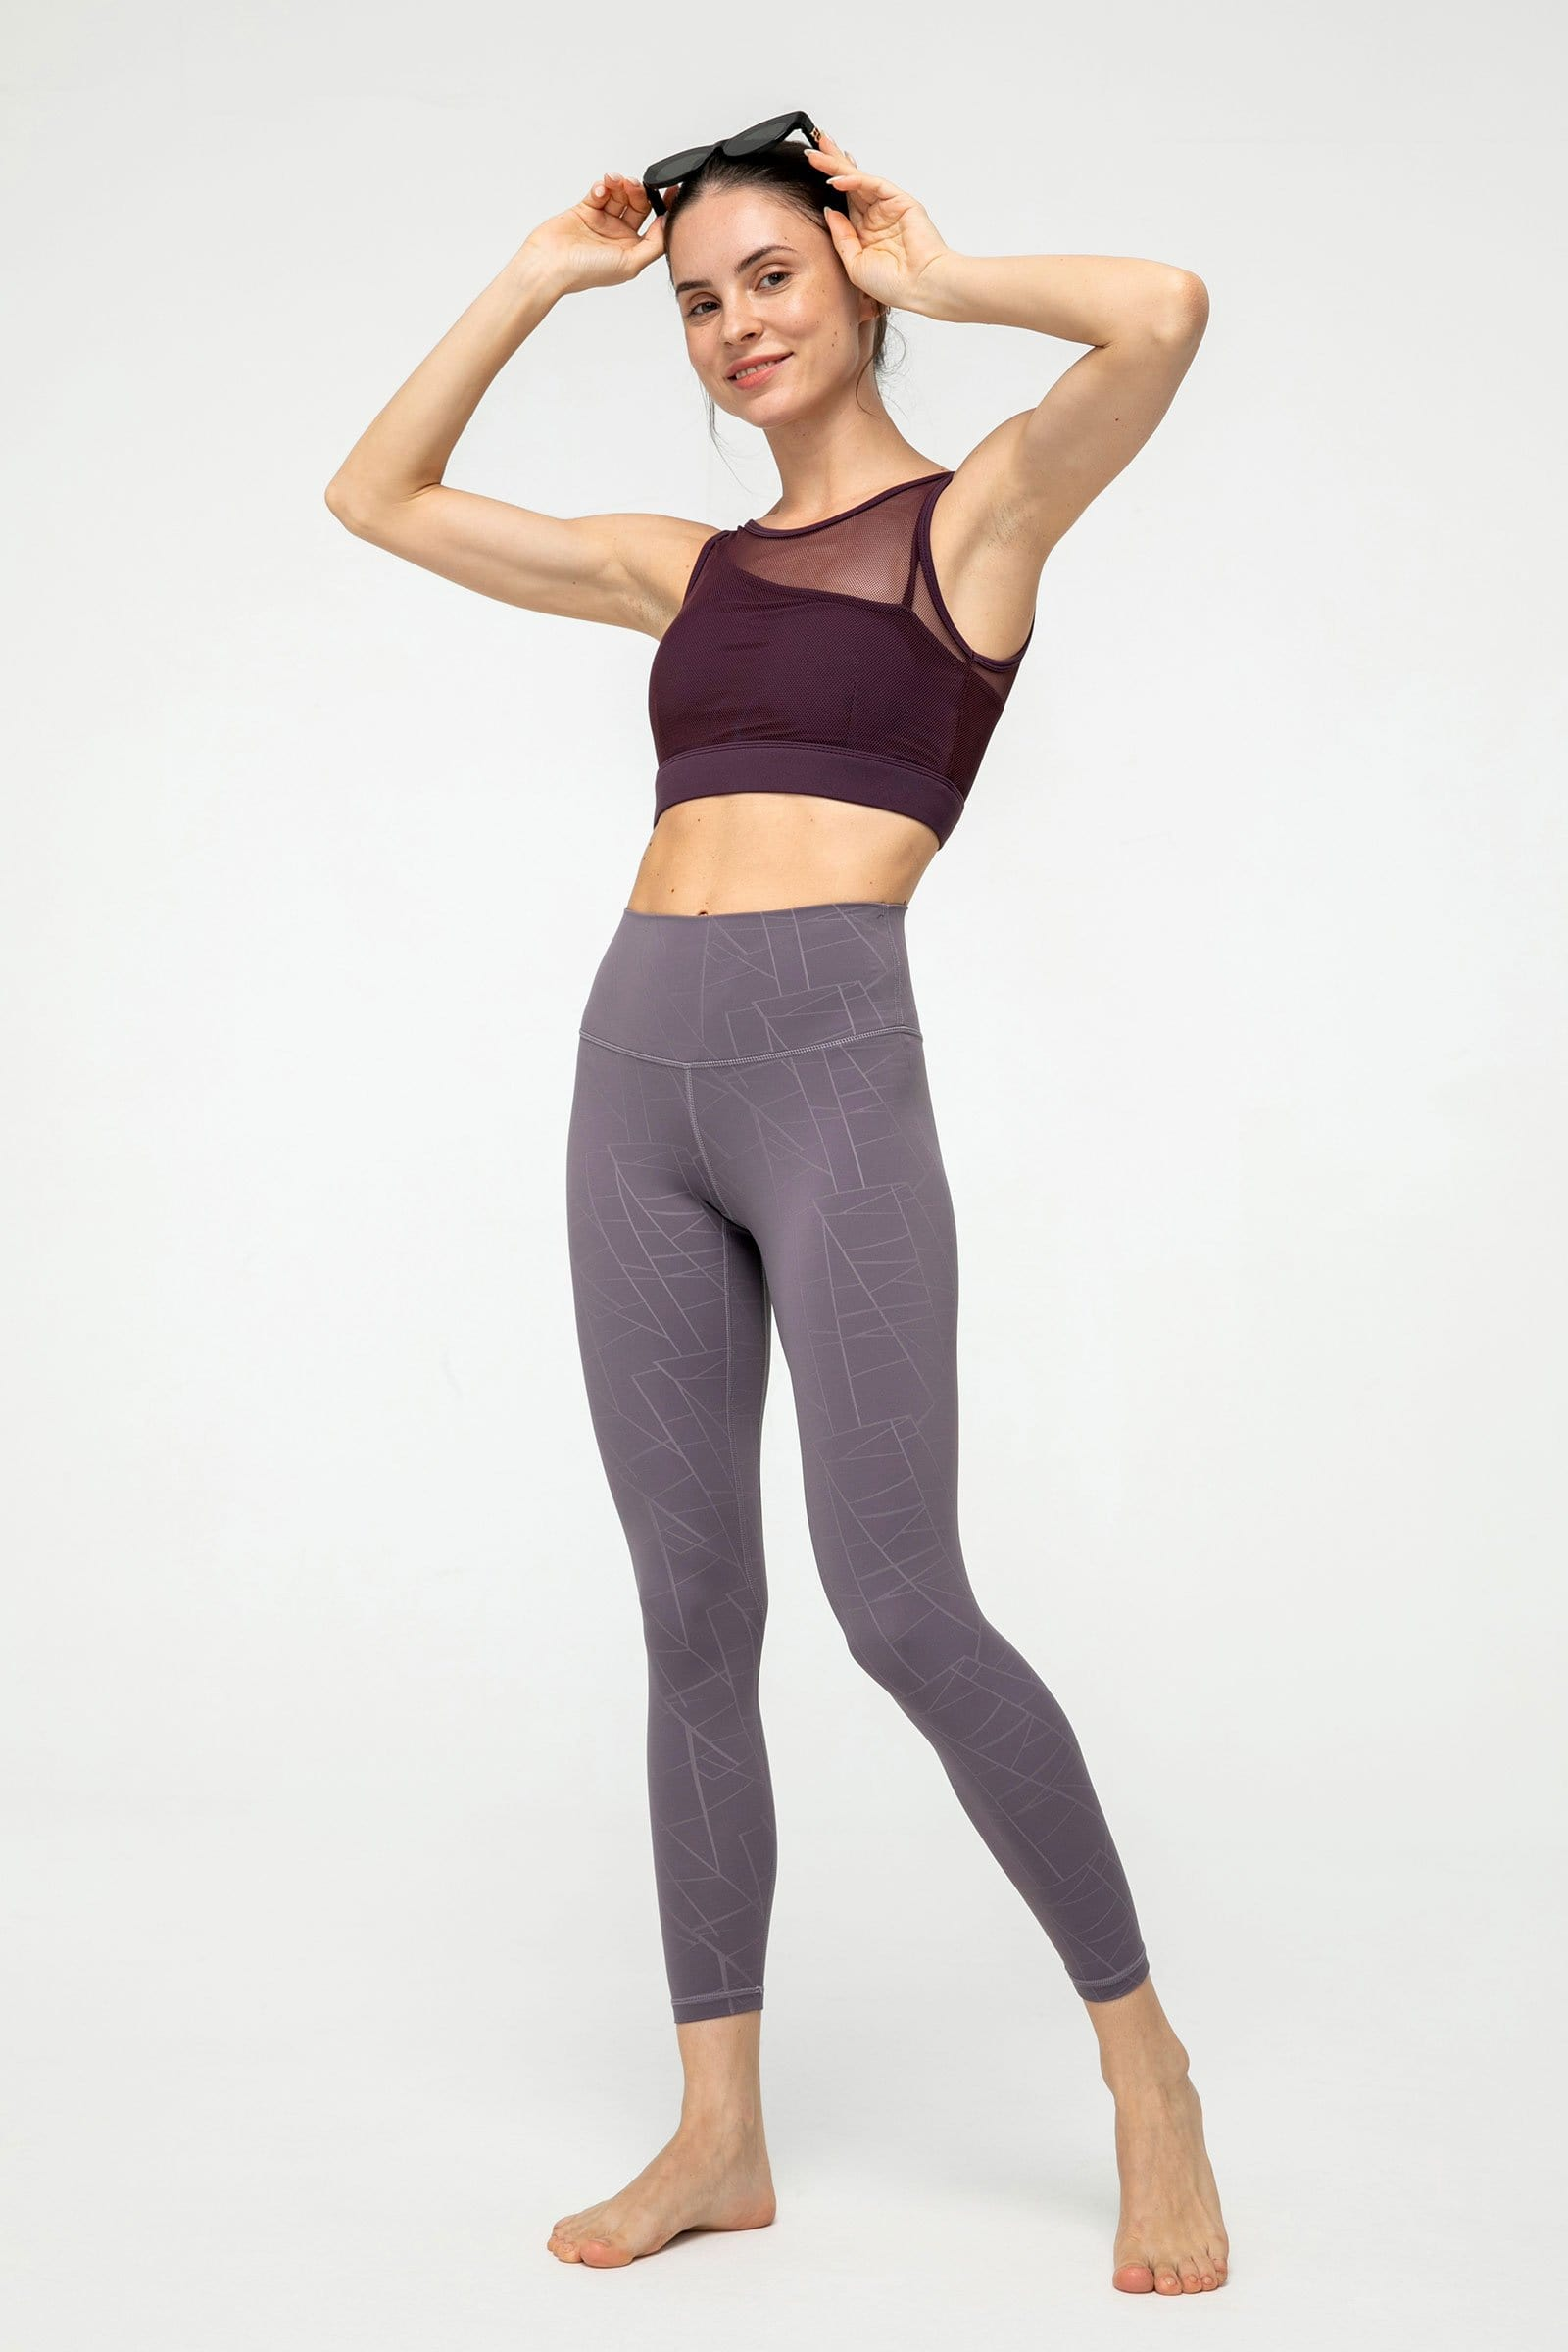 Powdered Violet Mosaic Leggings